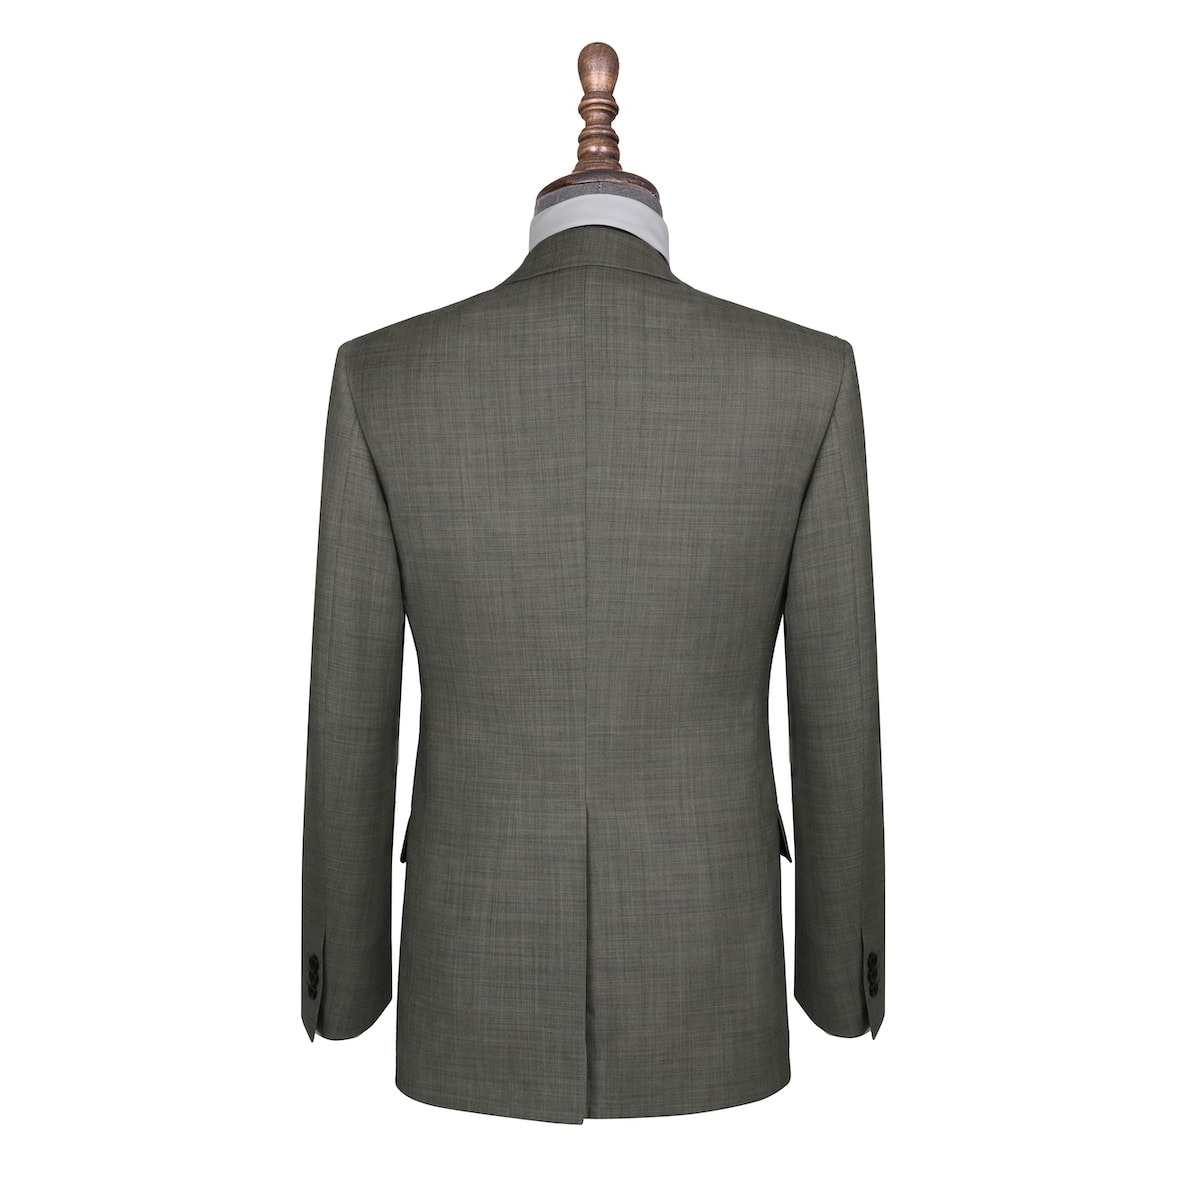 InStitchu Collection The Peppard Jacket